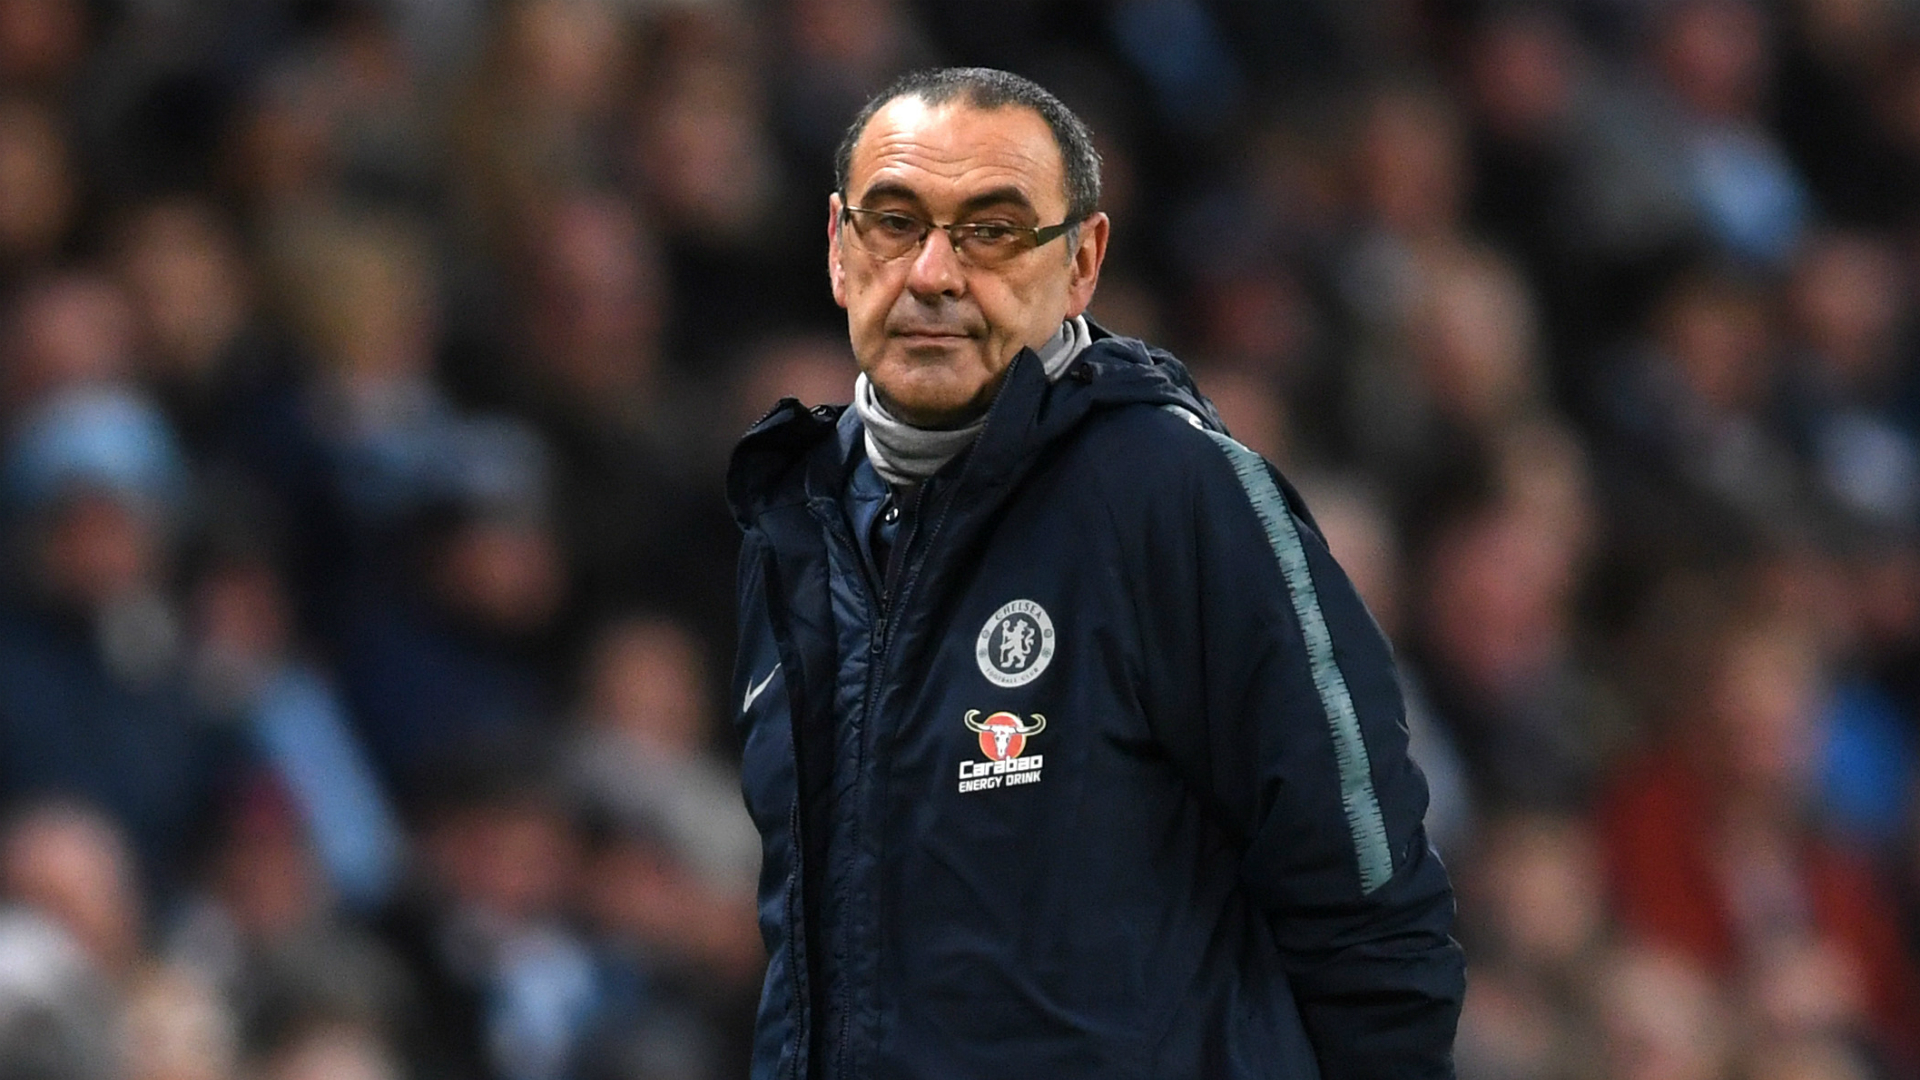 Guardiola was questioned too – Zola says Sarri needs time